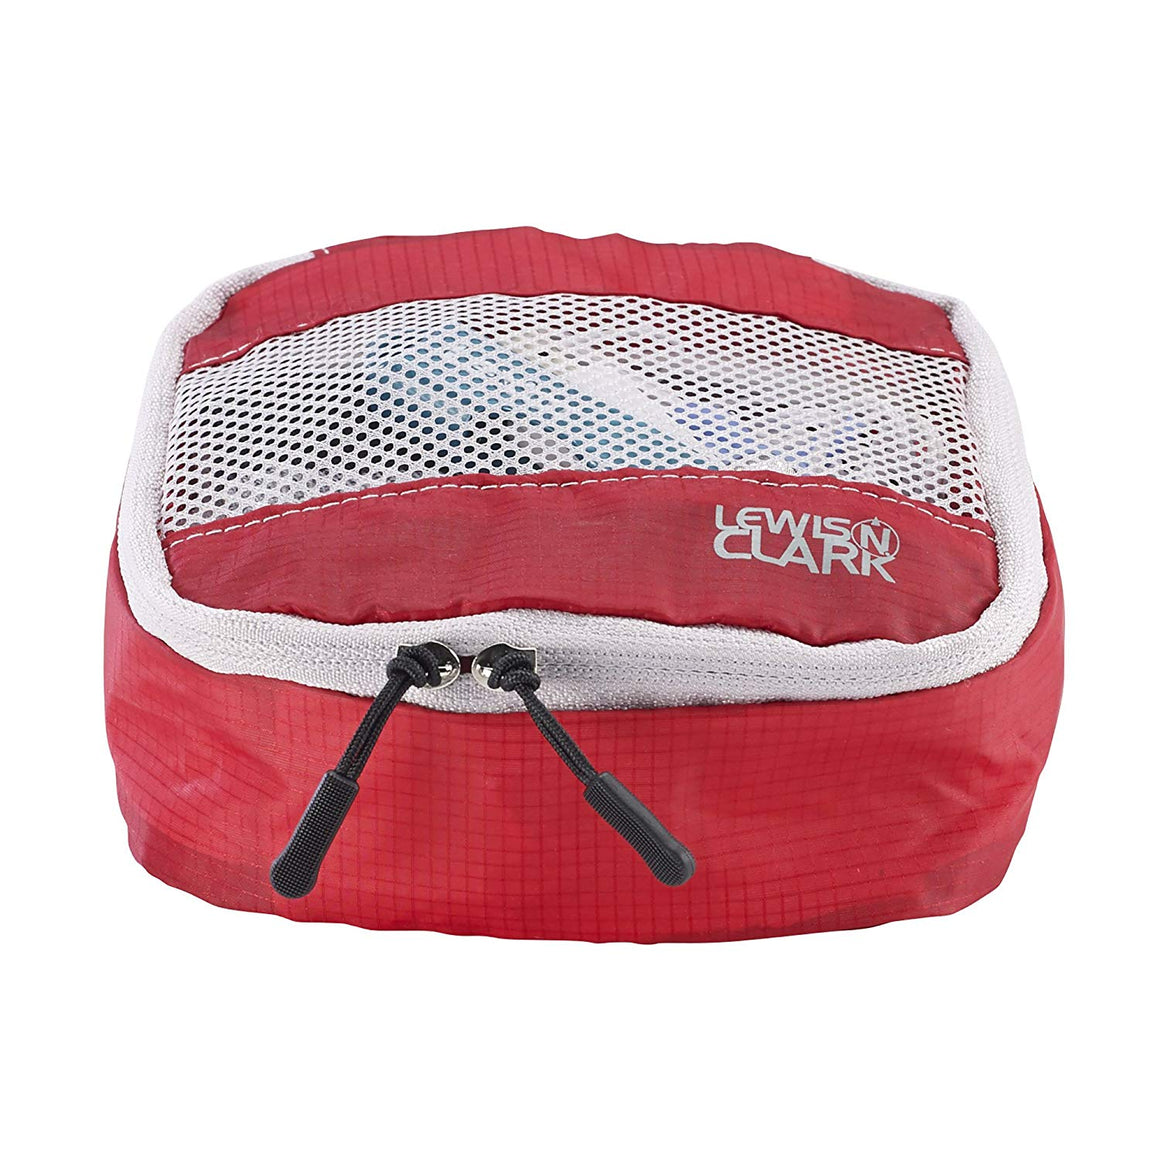 Lewis N Clark Micro Packing Cube Red